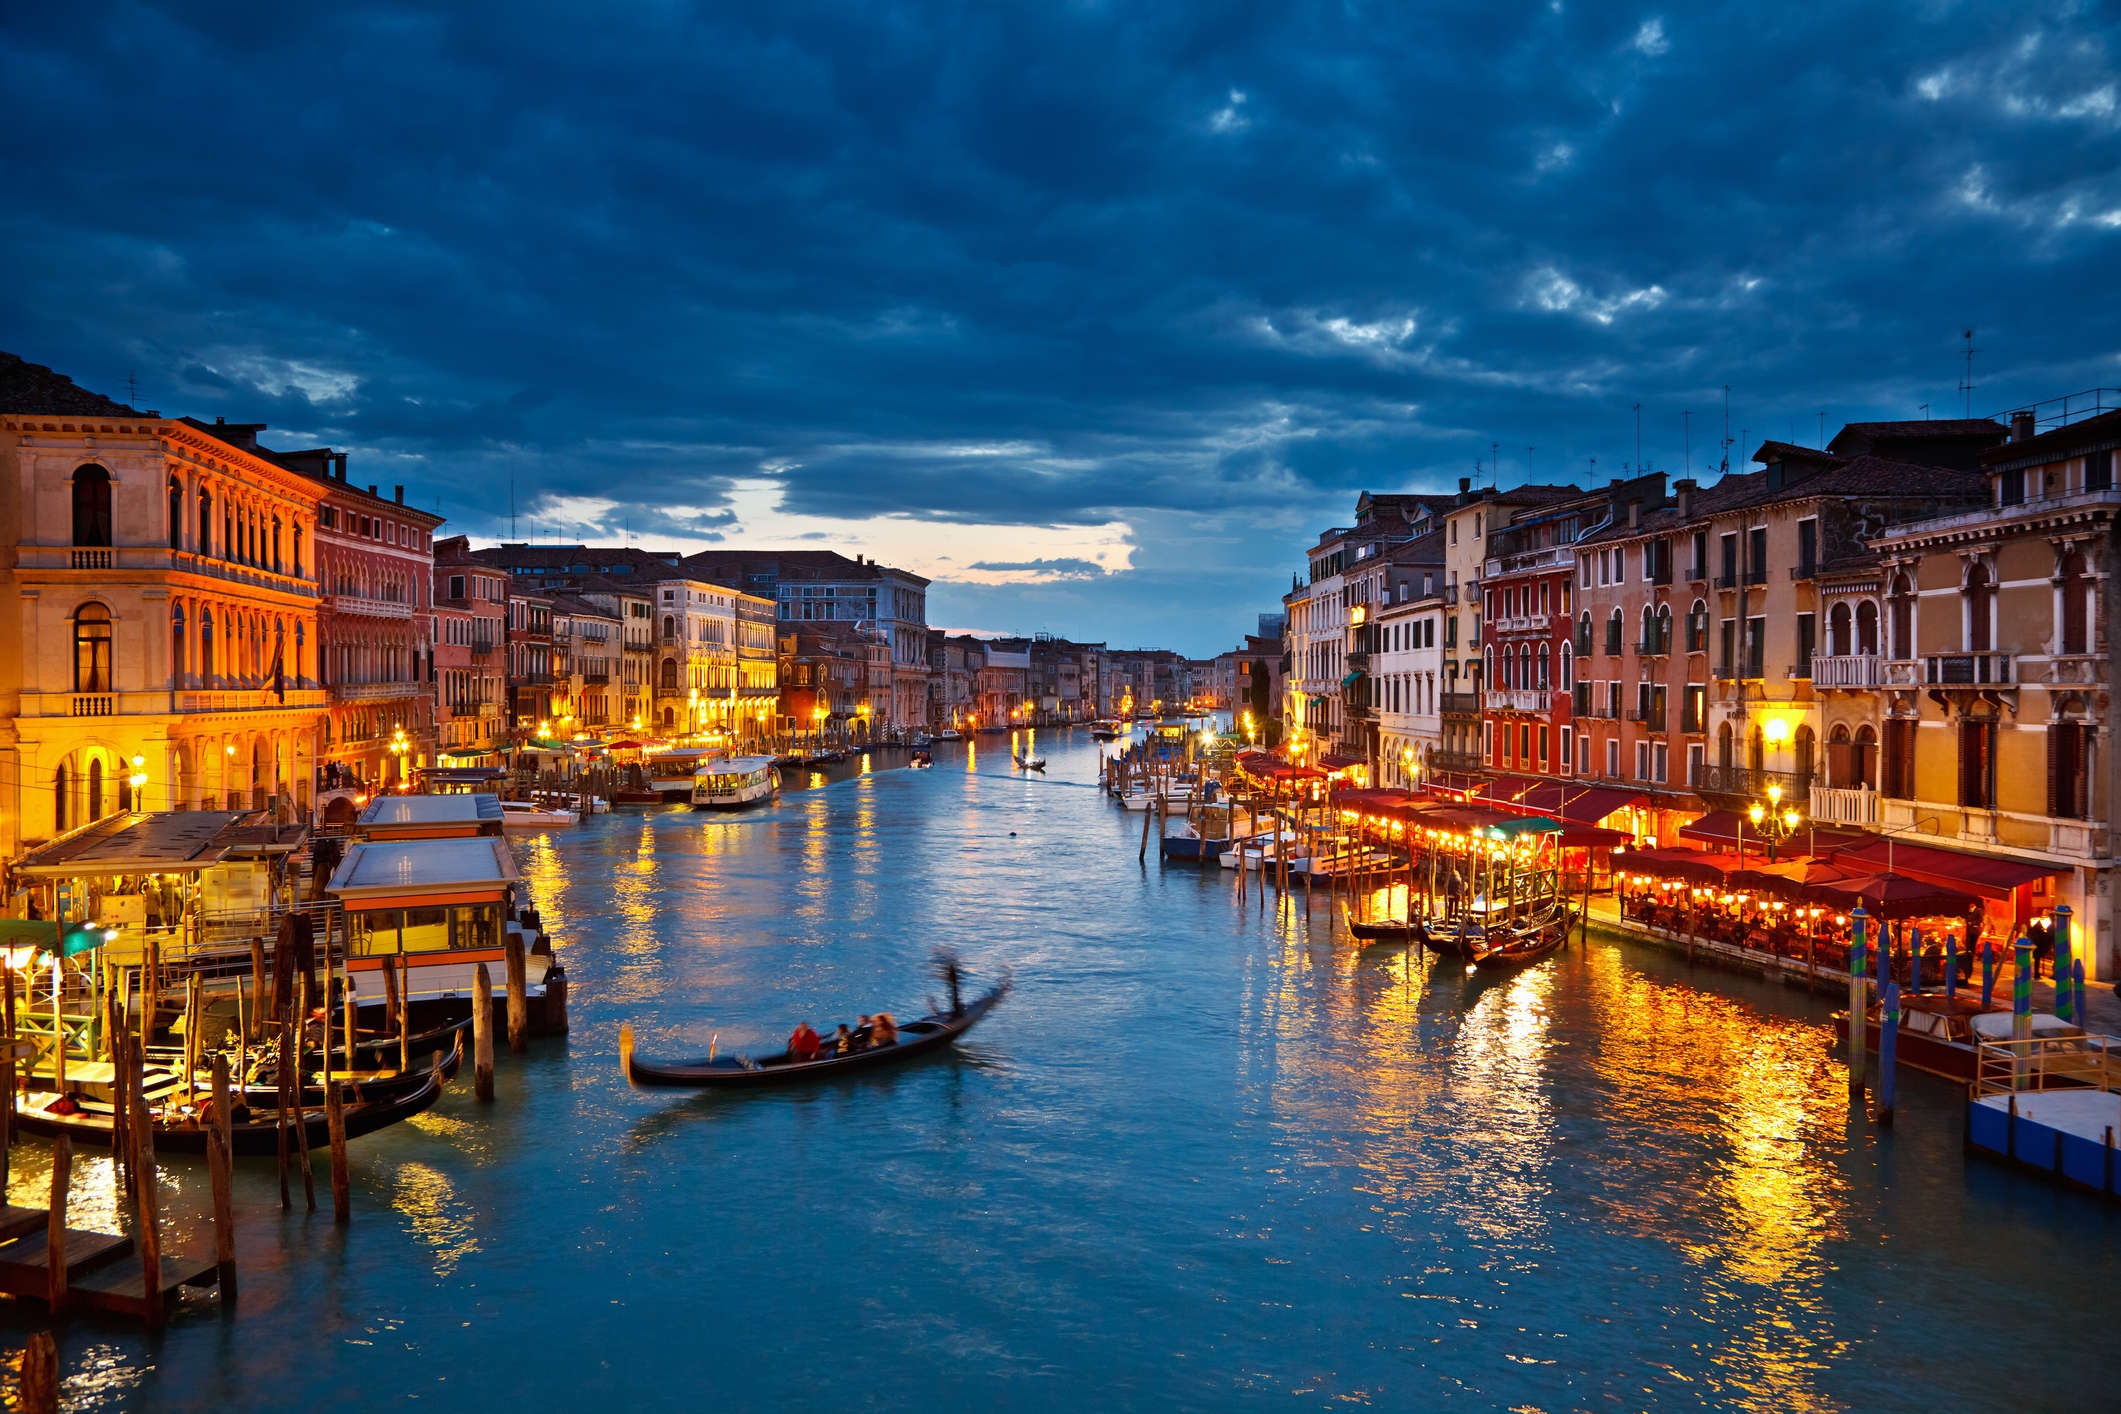 Tourists go nude swimming in Venice canal, got themselves arrested for the obscene act